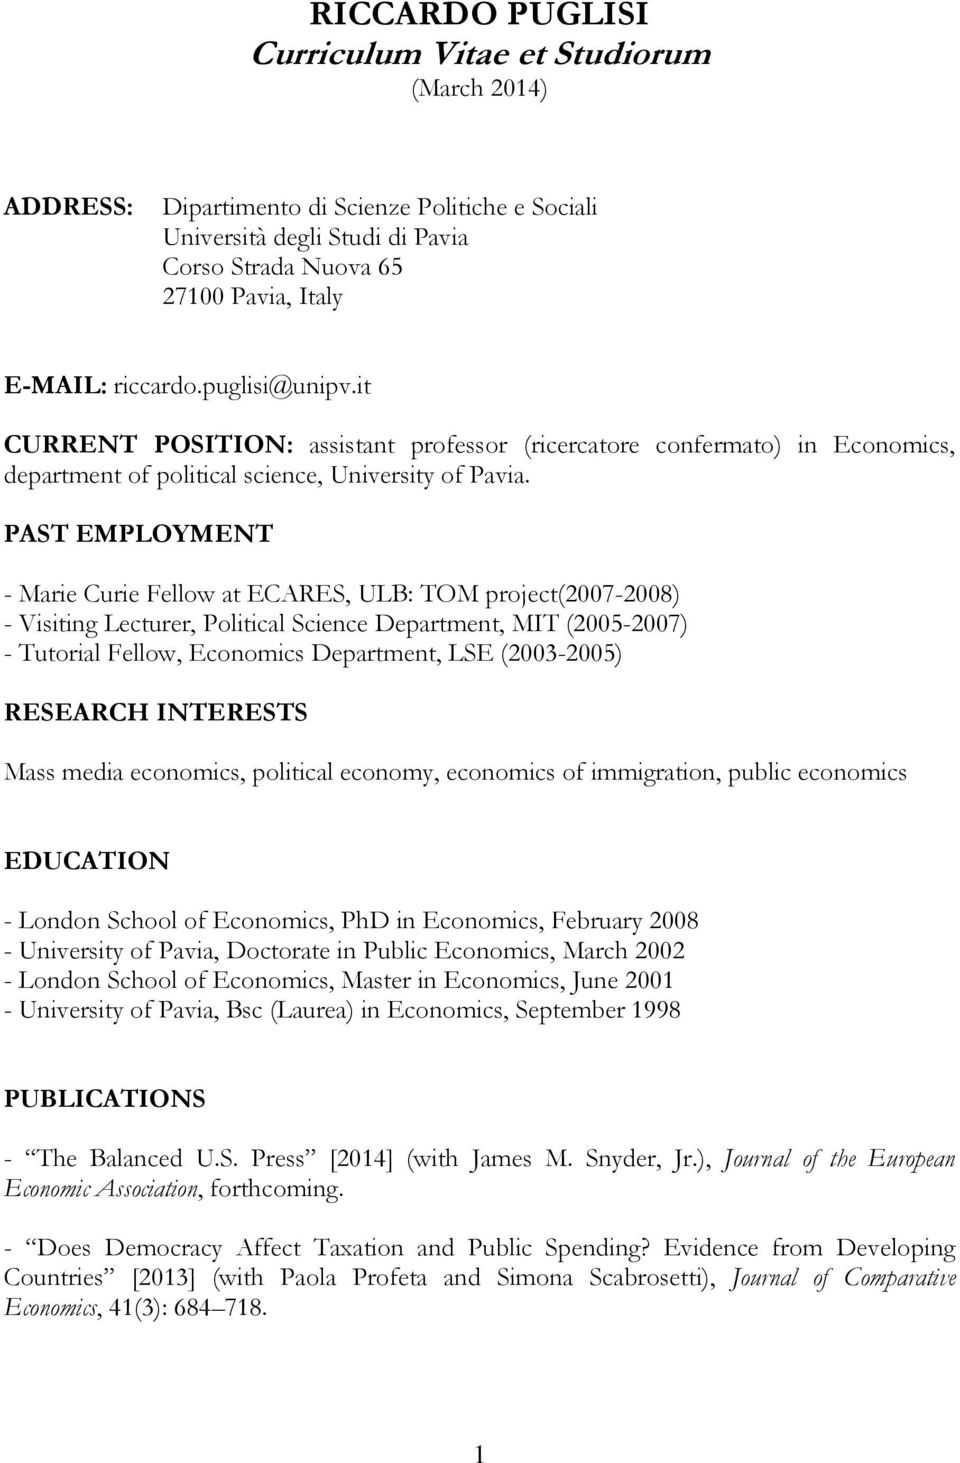 PAST EMPLOYMENT - Marie Curie Fellow at ECARES, ULB: TOM project(2007-2008) - Visiting Lecturer, Political Science Department, MIT (2005-2007) - Tutorial Fellow, Economics Department, LSE (2003-2005)